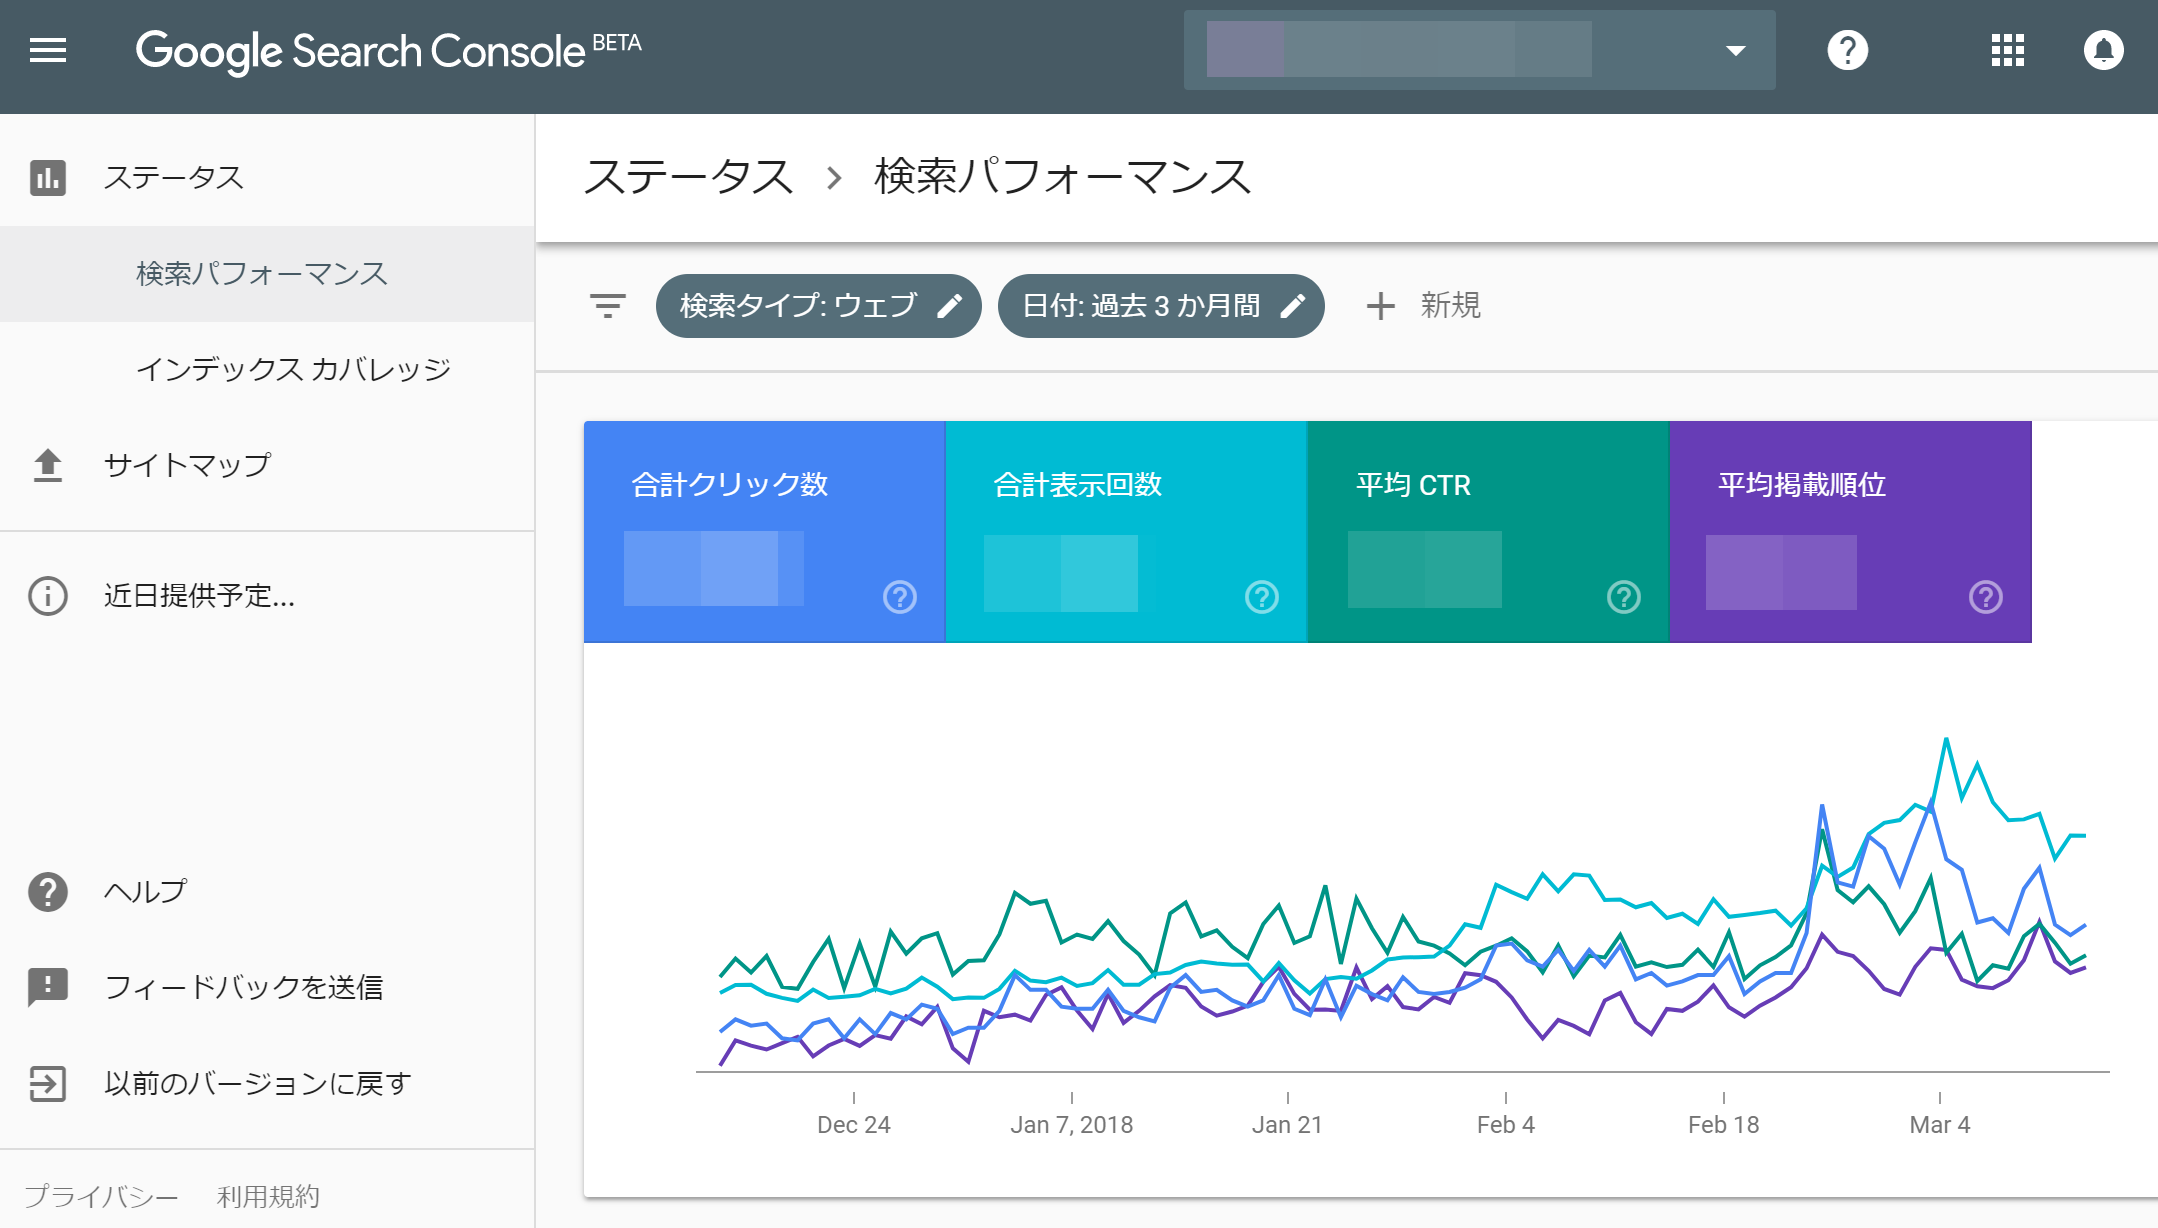 Search Console「検索パフォーマンス」レポート